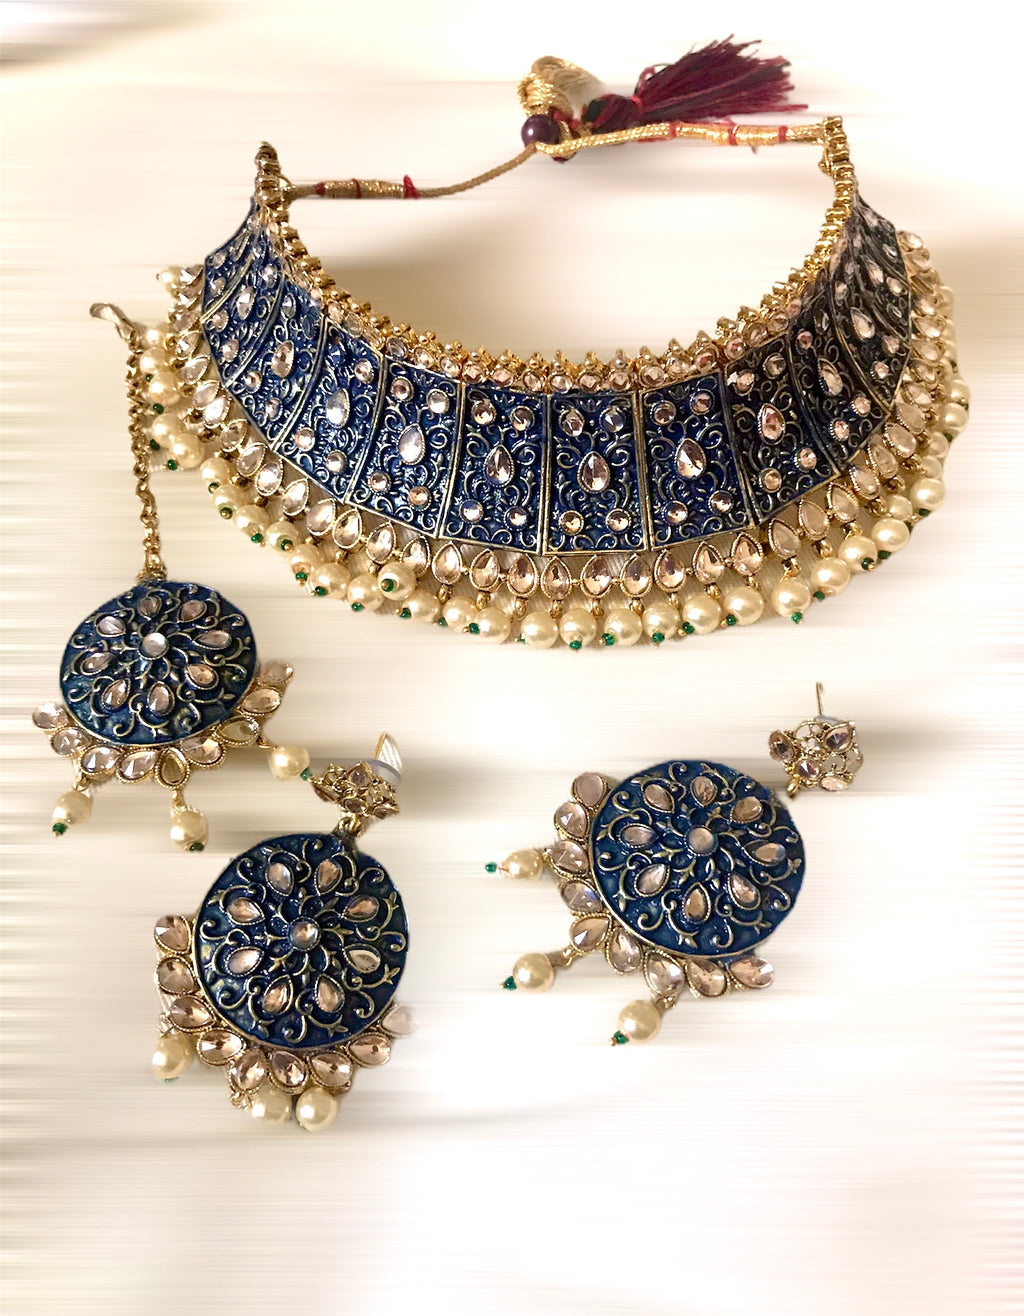 Indian bridal necklace earrings and teeka head jewelry set - WISHKAA.COM